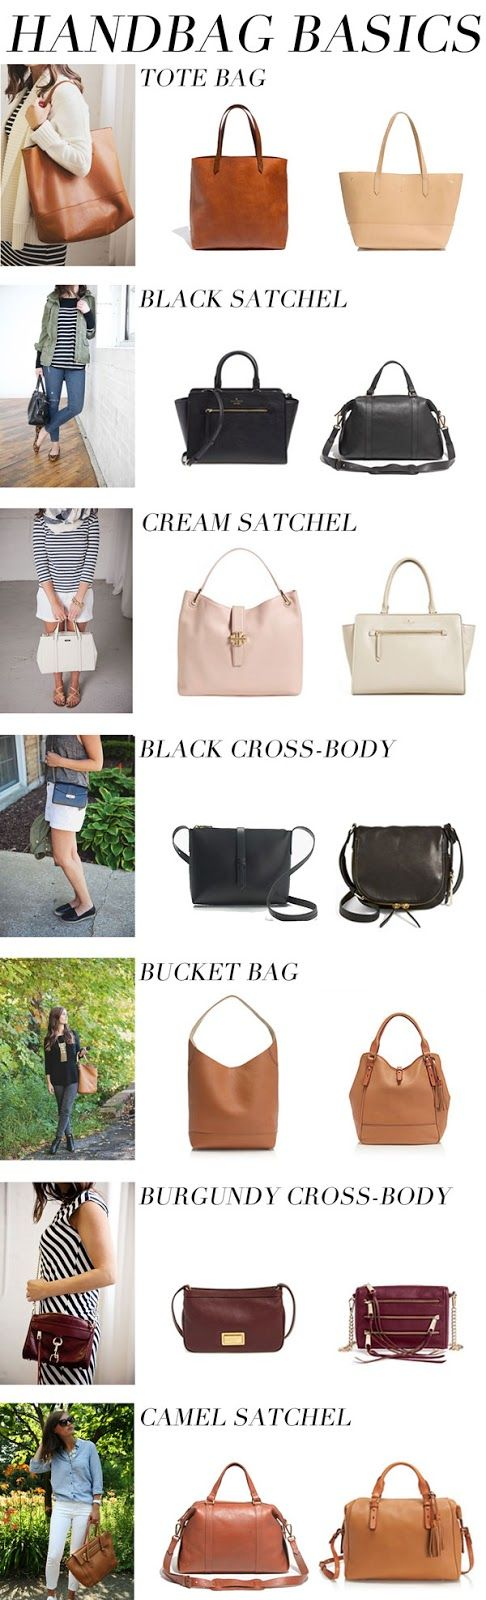 http://www.styleyourwear.com/category/handbags-for-women/ Handbag basics...: